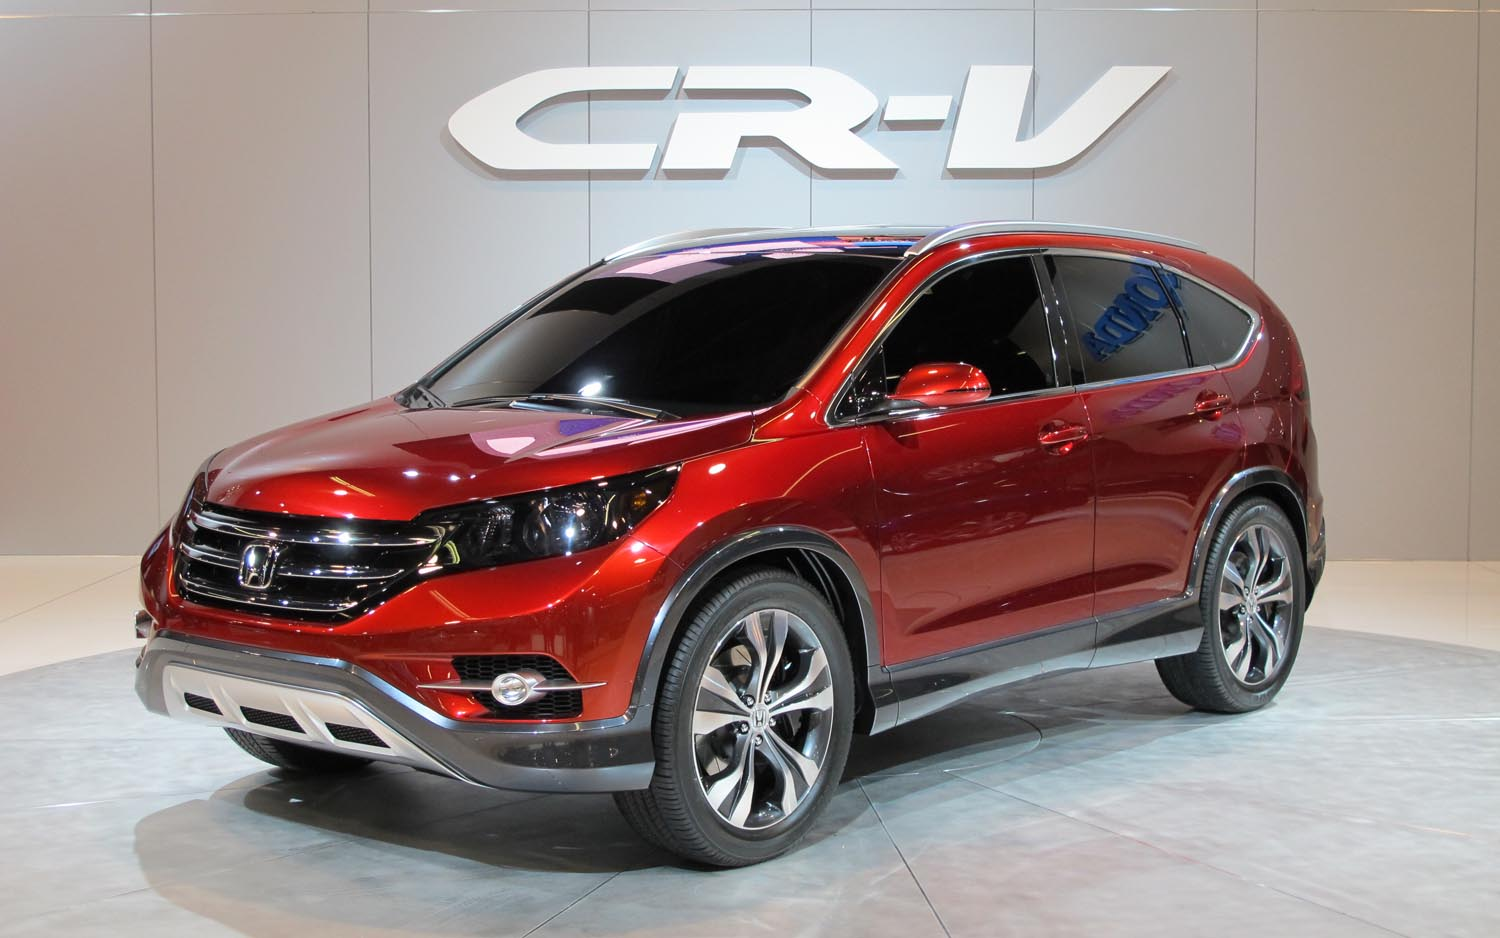 Honda Crv Fuse Box Problems Wiring Library 2010 Cr V Concept Comes To California Gets New Engine